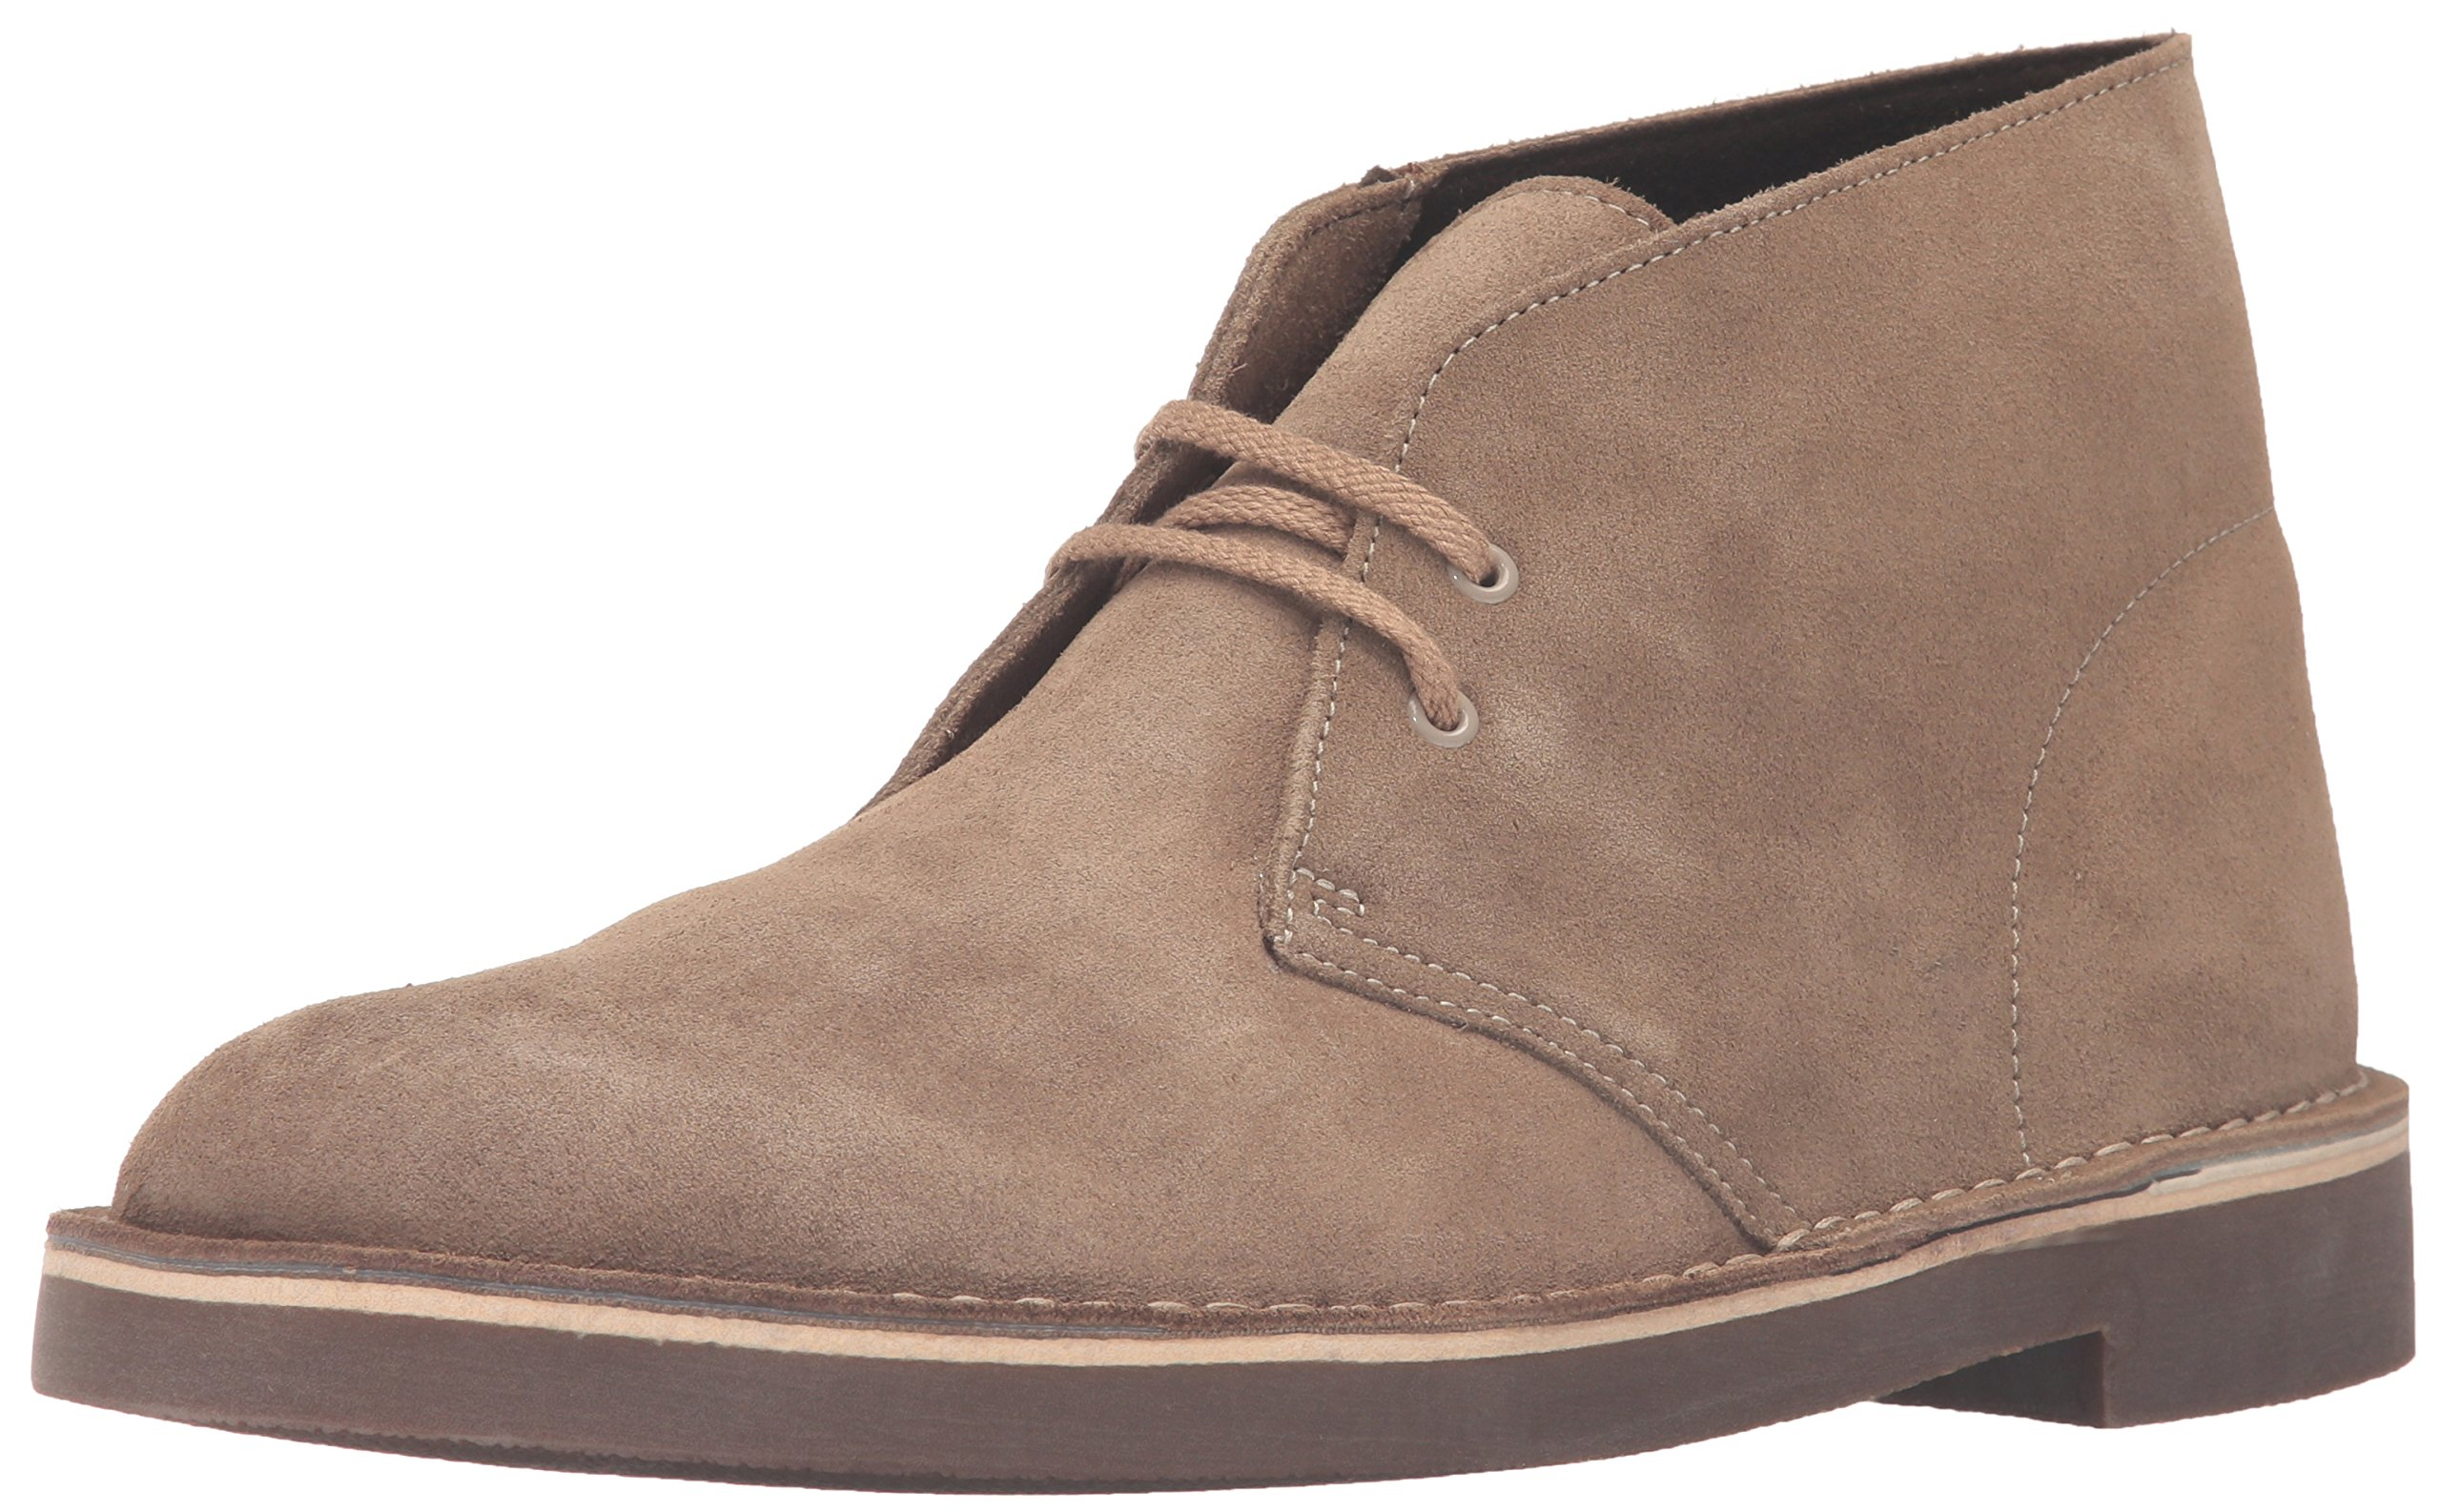 Clarks Men's Bushacre 2 Chukka Boot,Sand Sable,10 M US by CLARKS (Image #1)